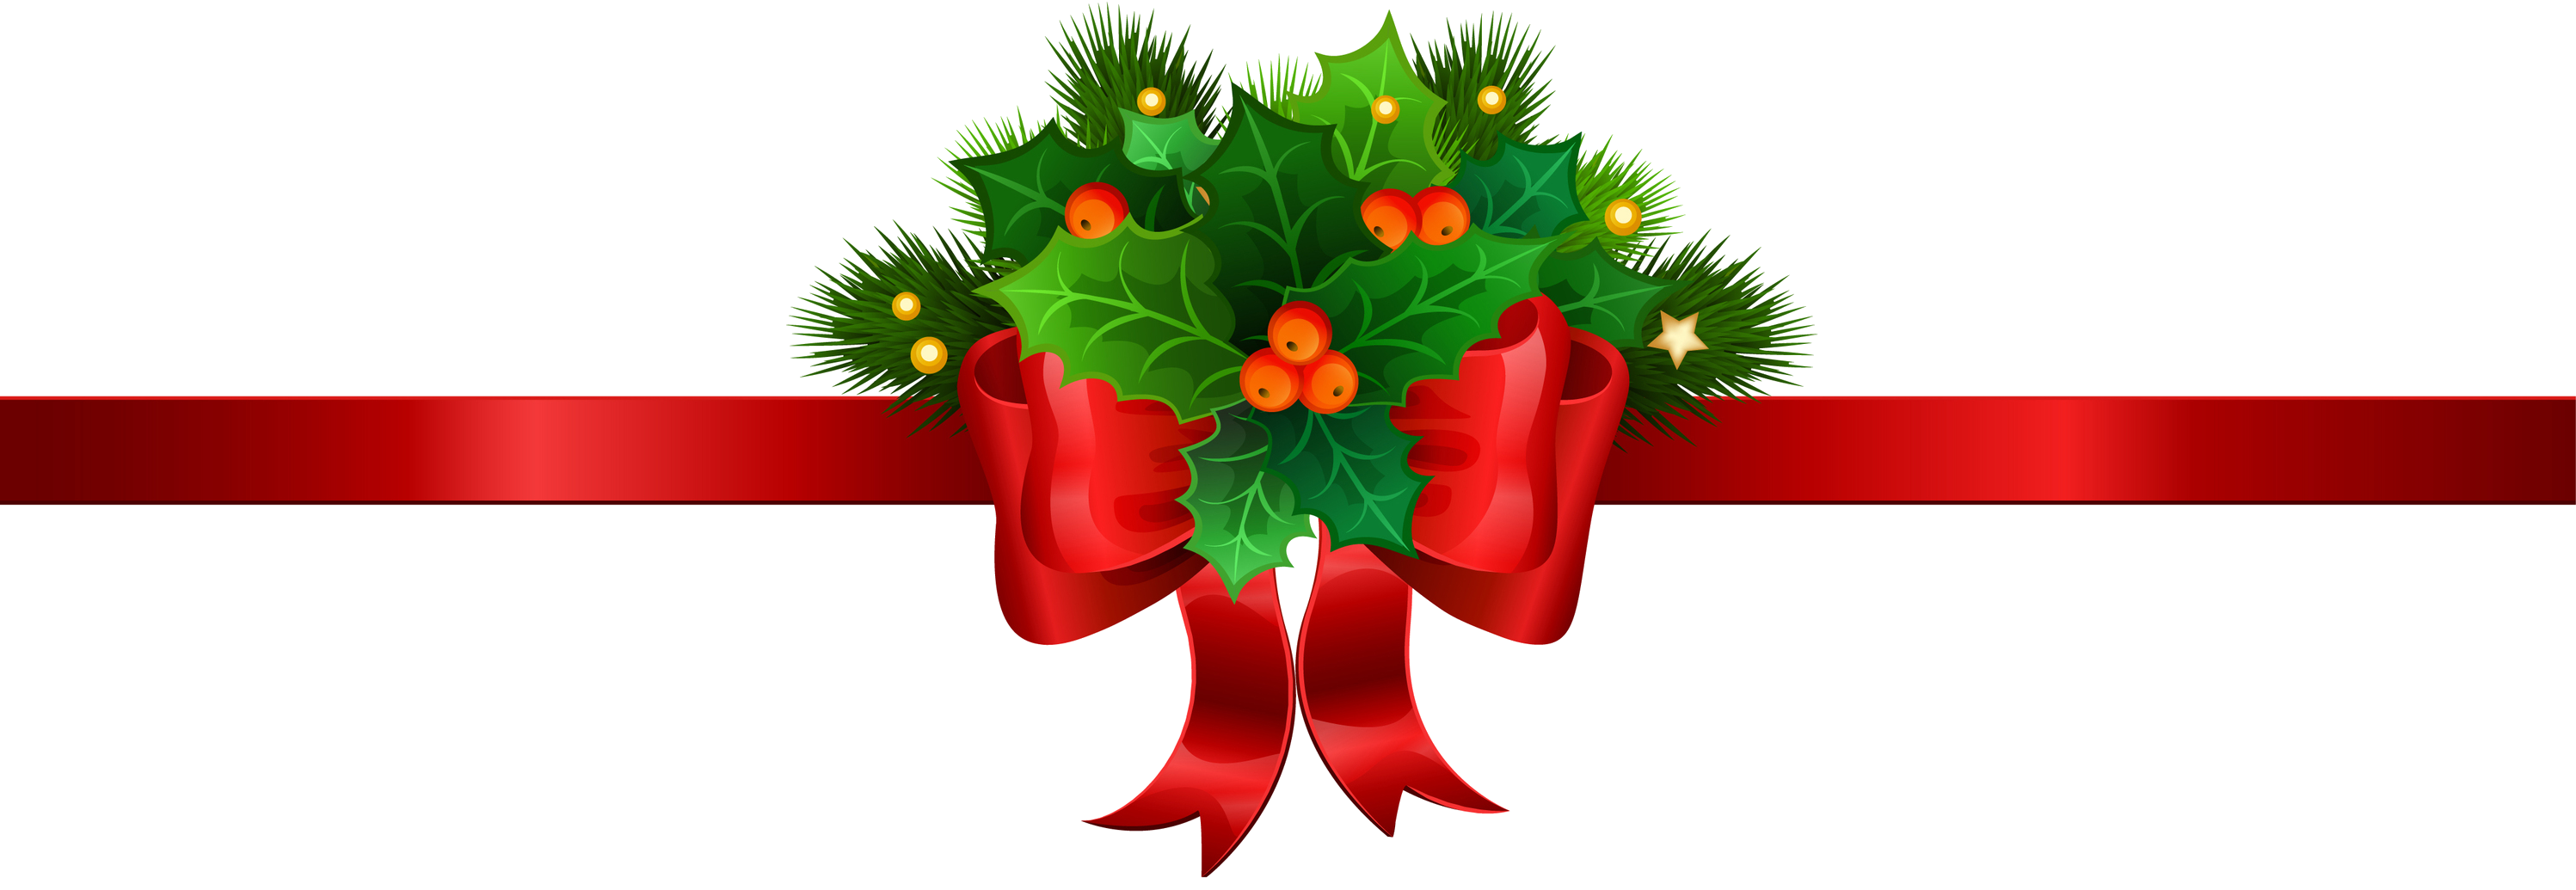 Christmas header clipart clipart library 28+ Collection of Christmas Divider Clipart | High quality, free ... clipart library